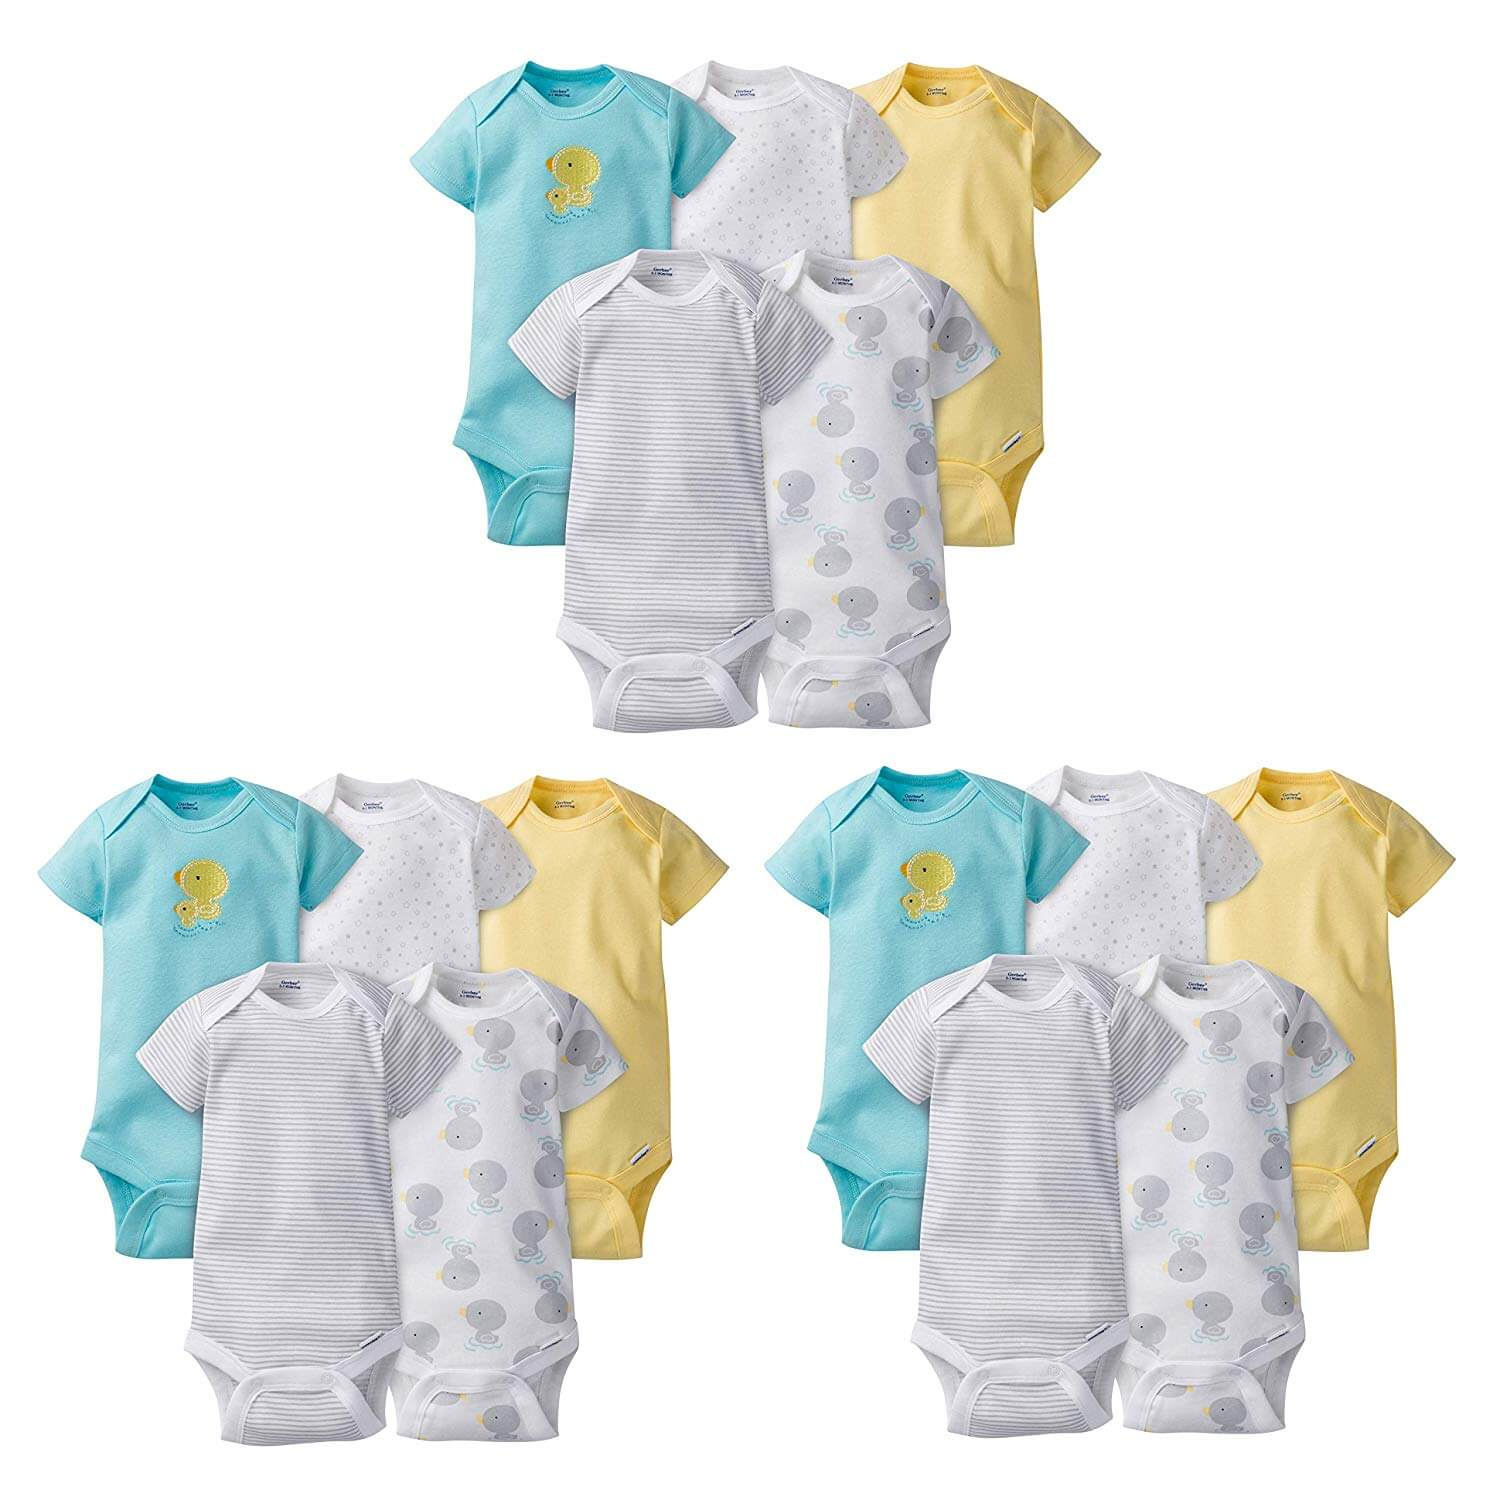 15-Piece Neutral Duck Onesies Brand Short Sleeve Bodysuits Grow-with-Me Set